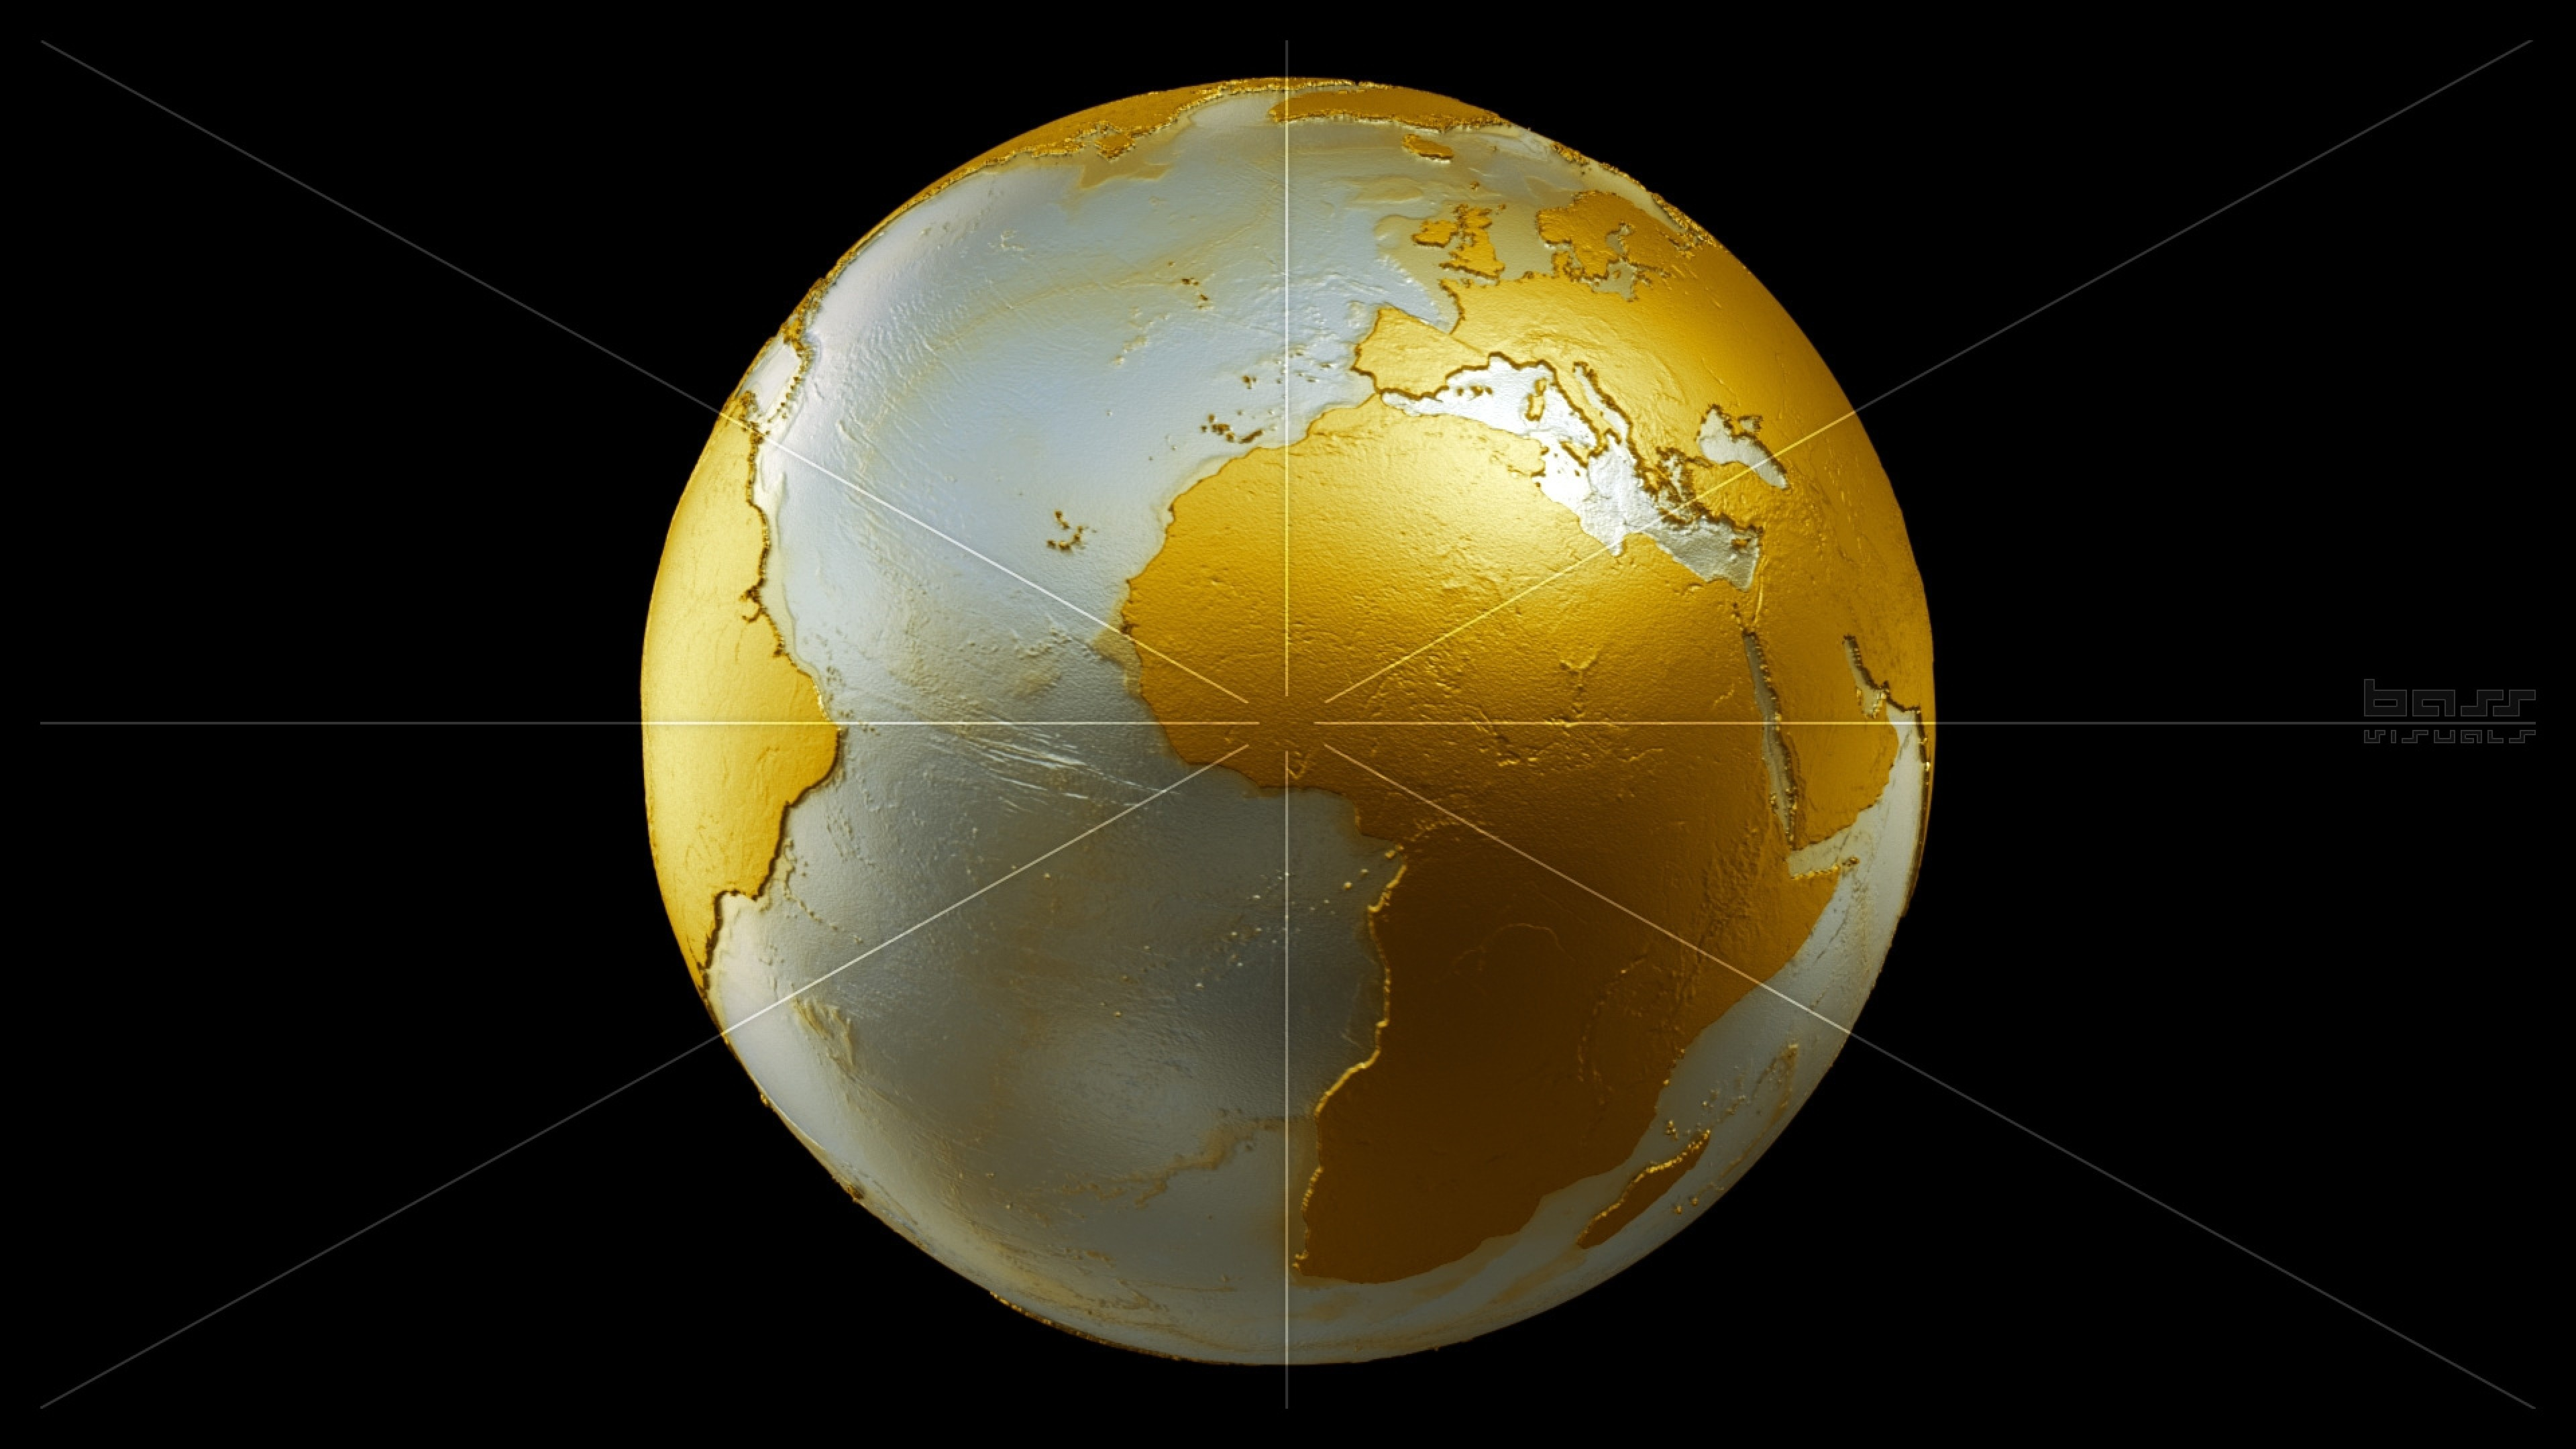 Preview wallpaper earth, globe, planet, gold 3840×2160